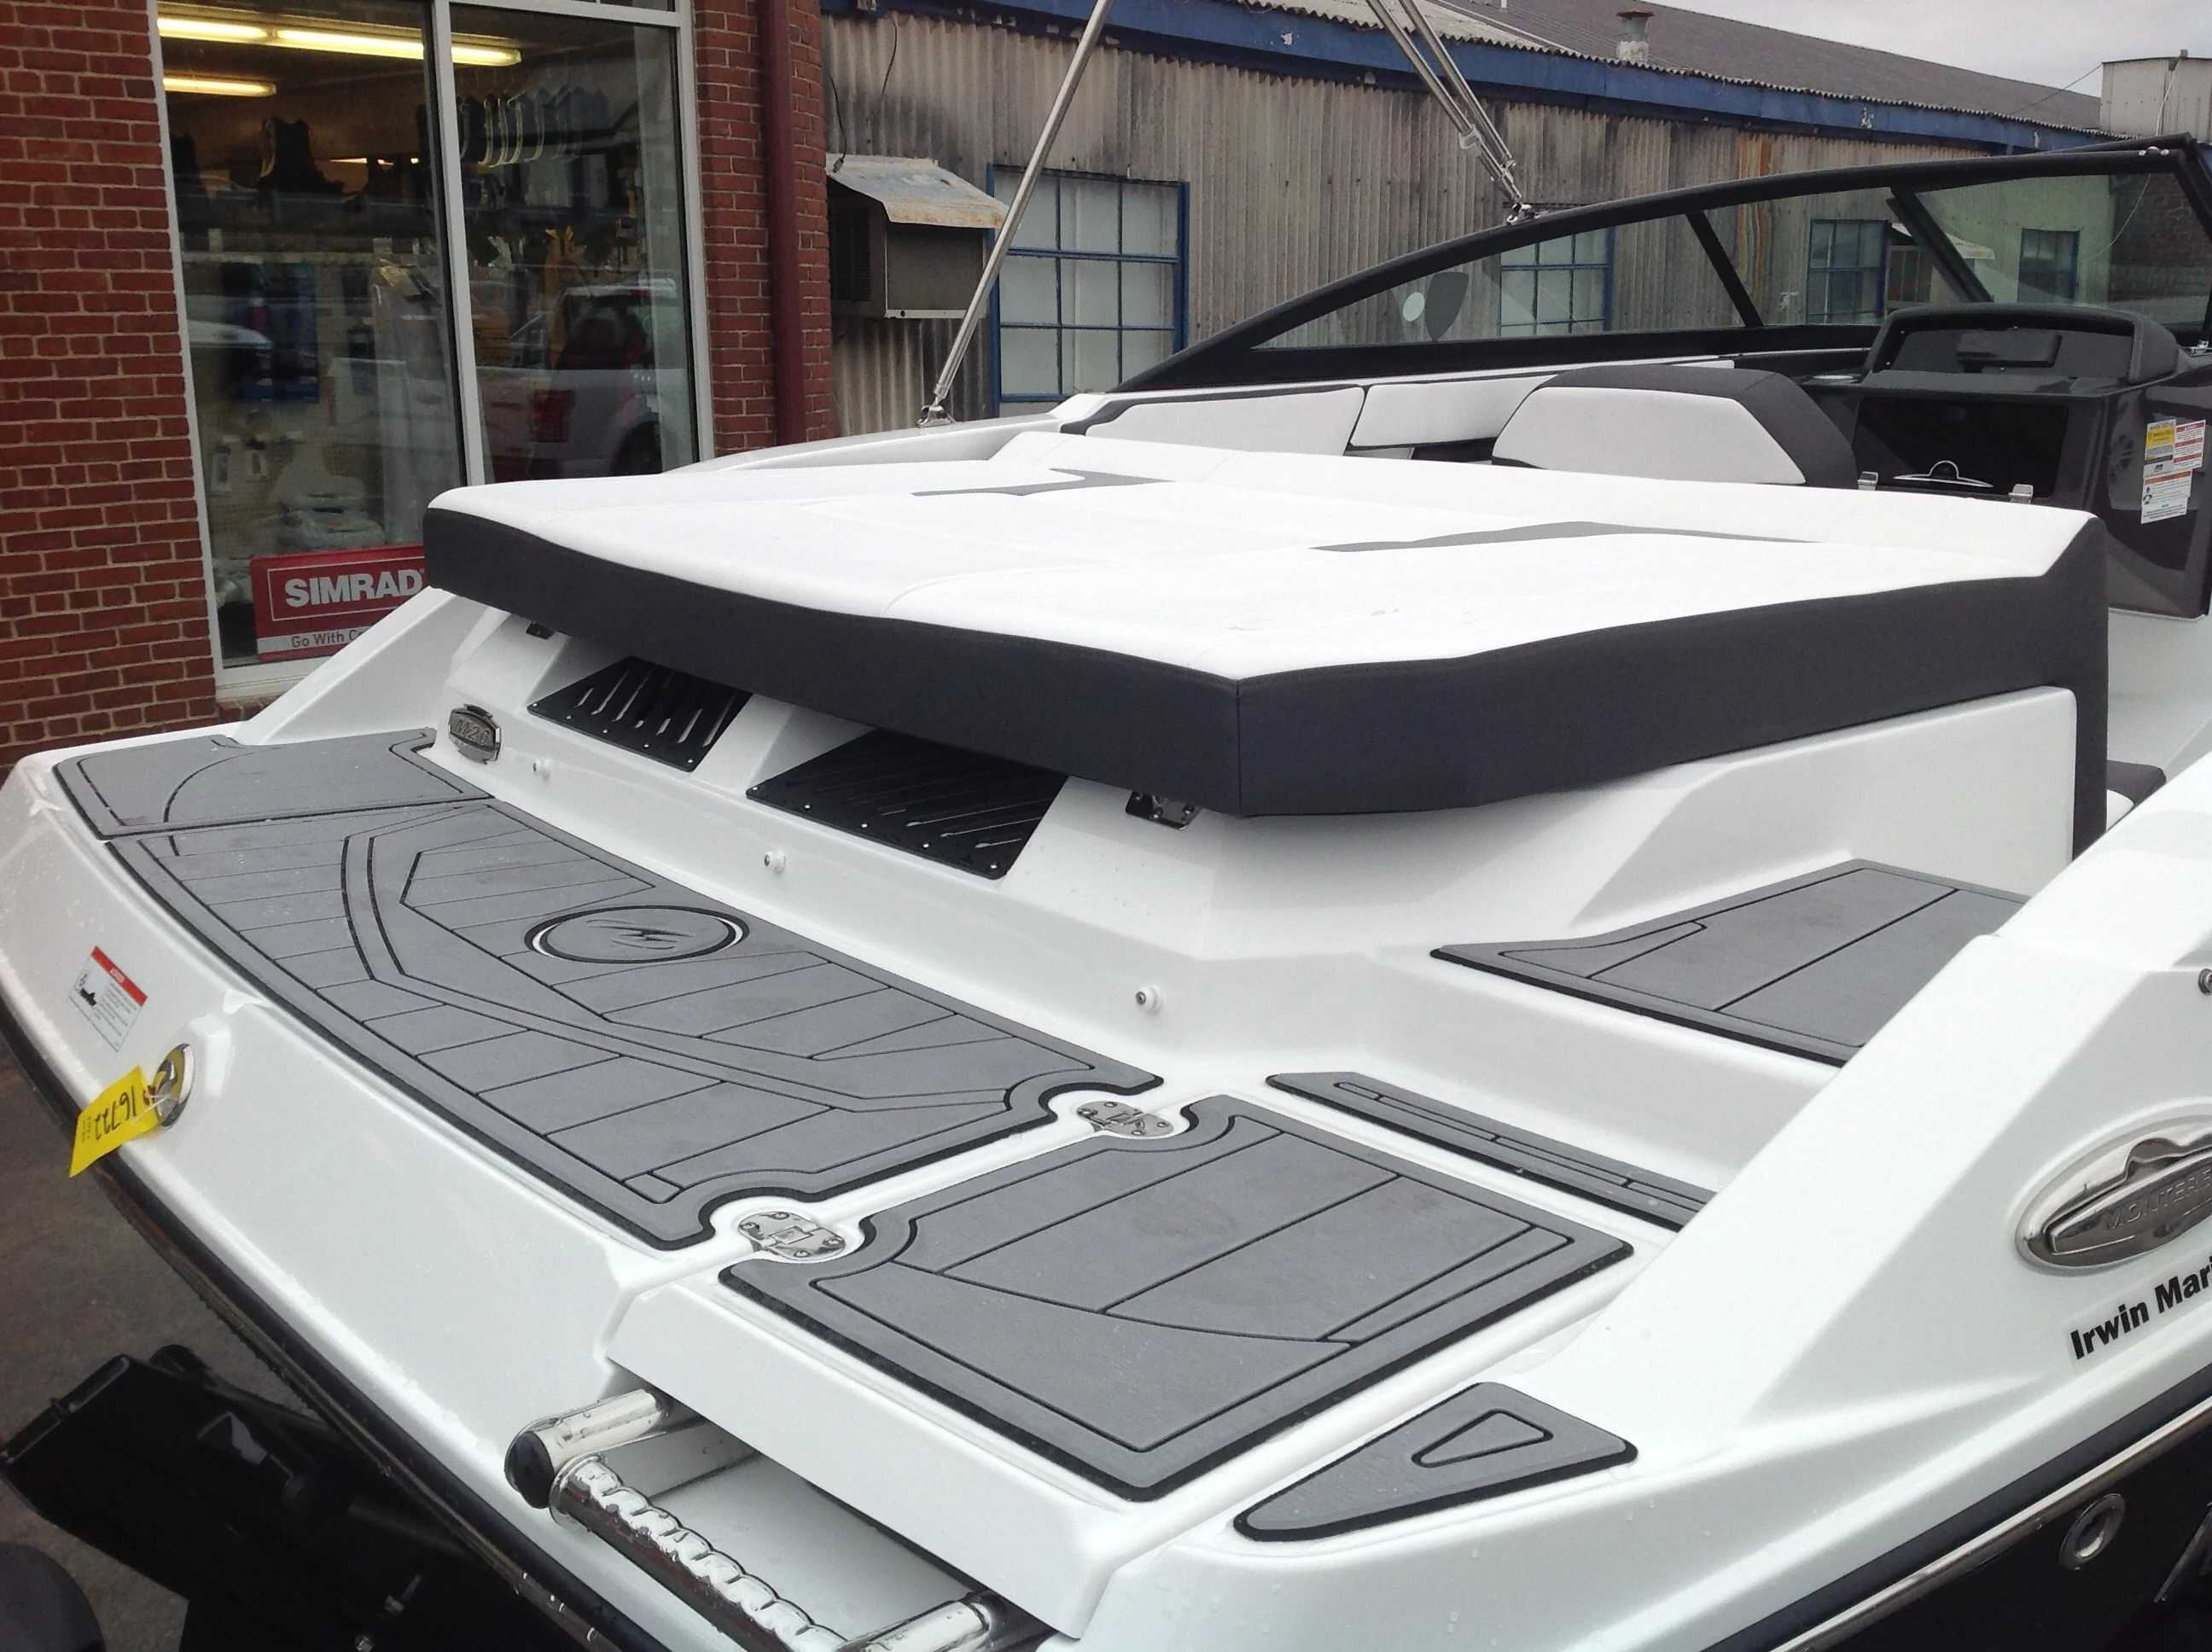 2021 Monterey boat for sale, model of the boat is M20 & Image # 12 of 13